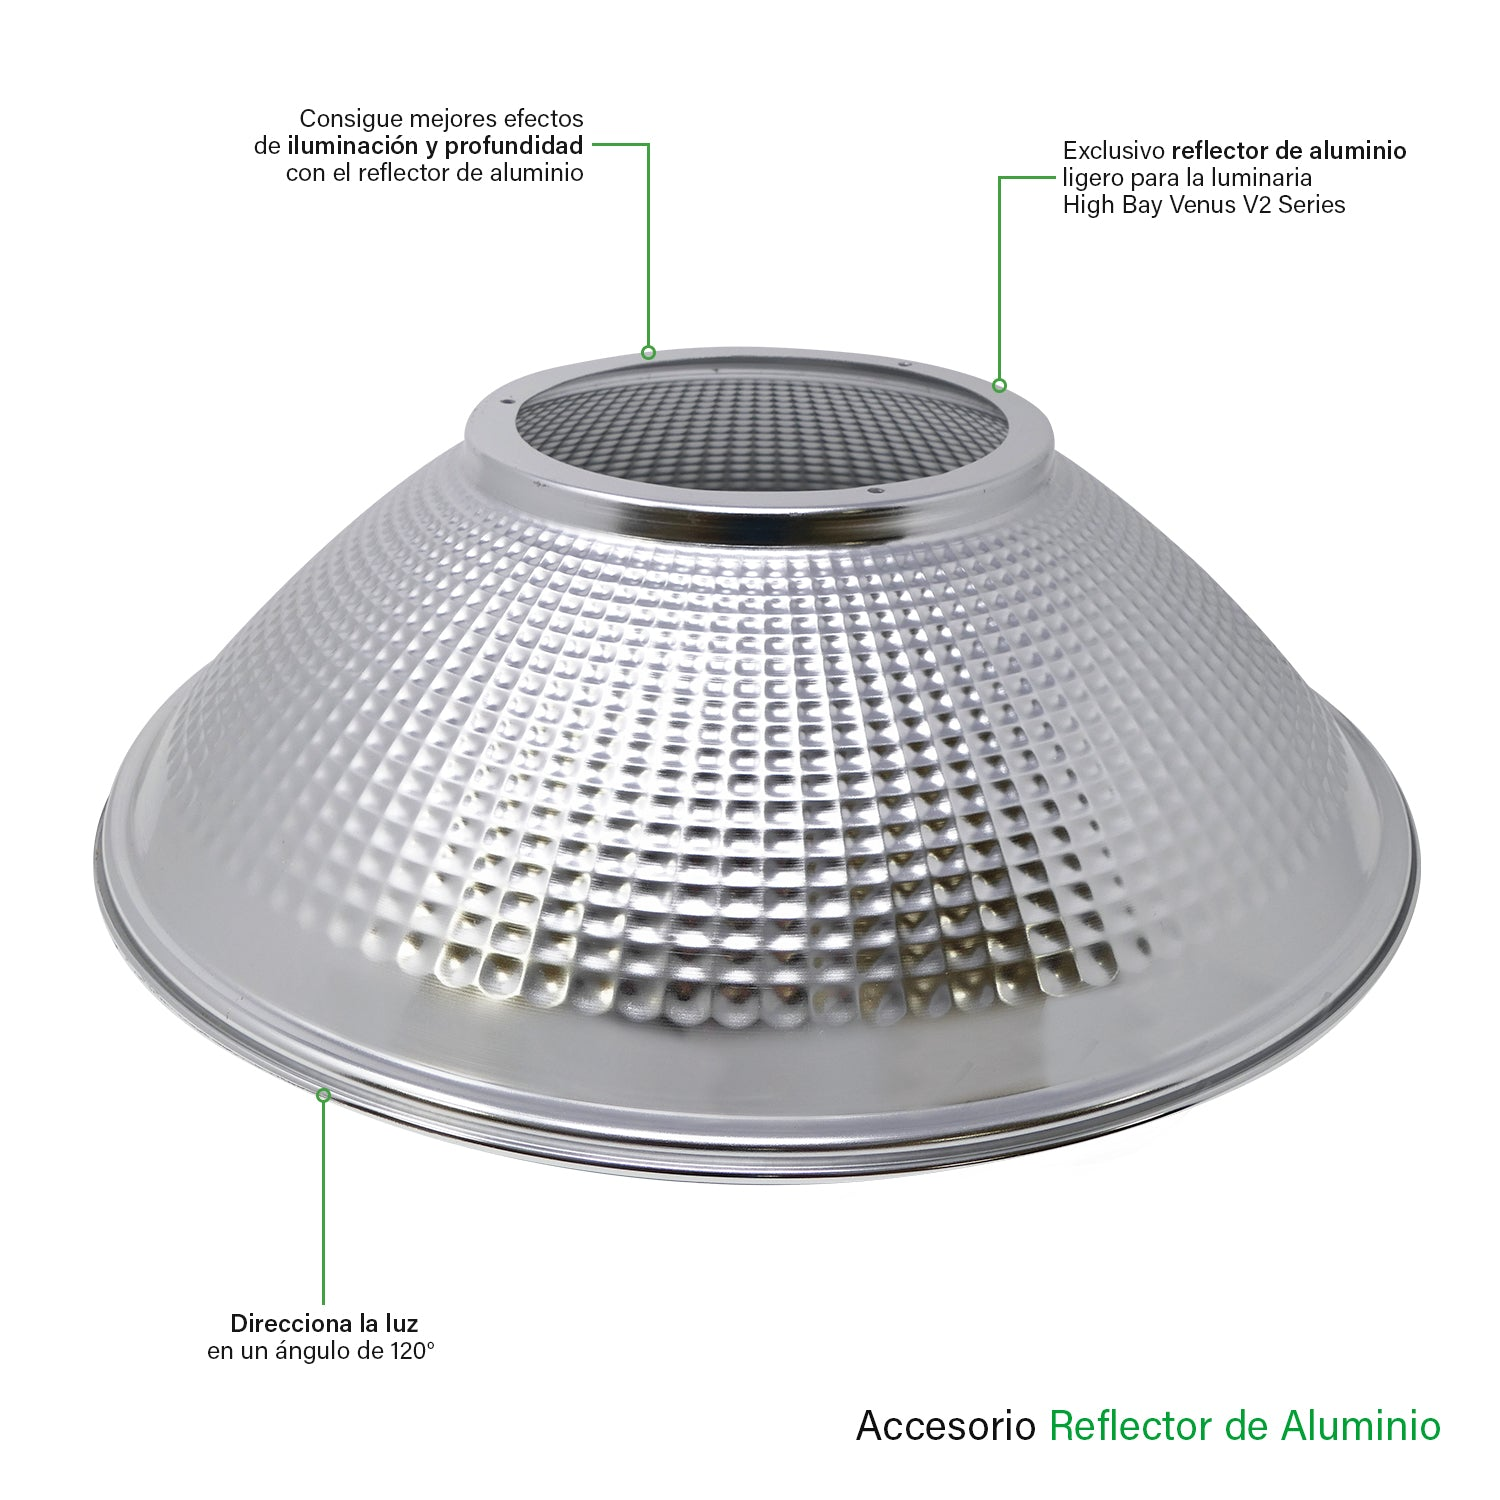 Reflector de Aluminio - Besser Lighting